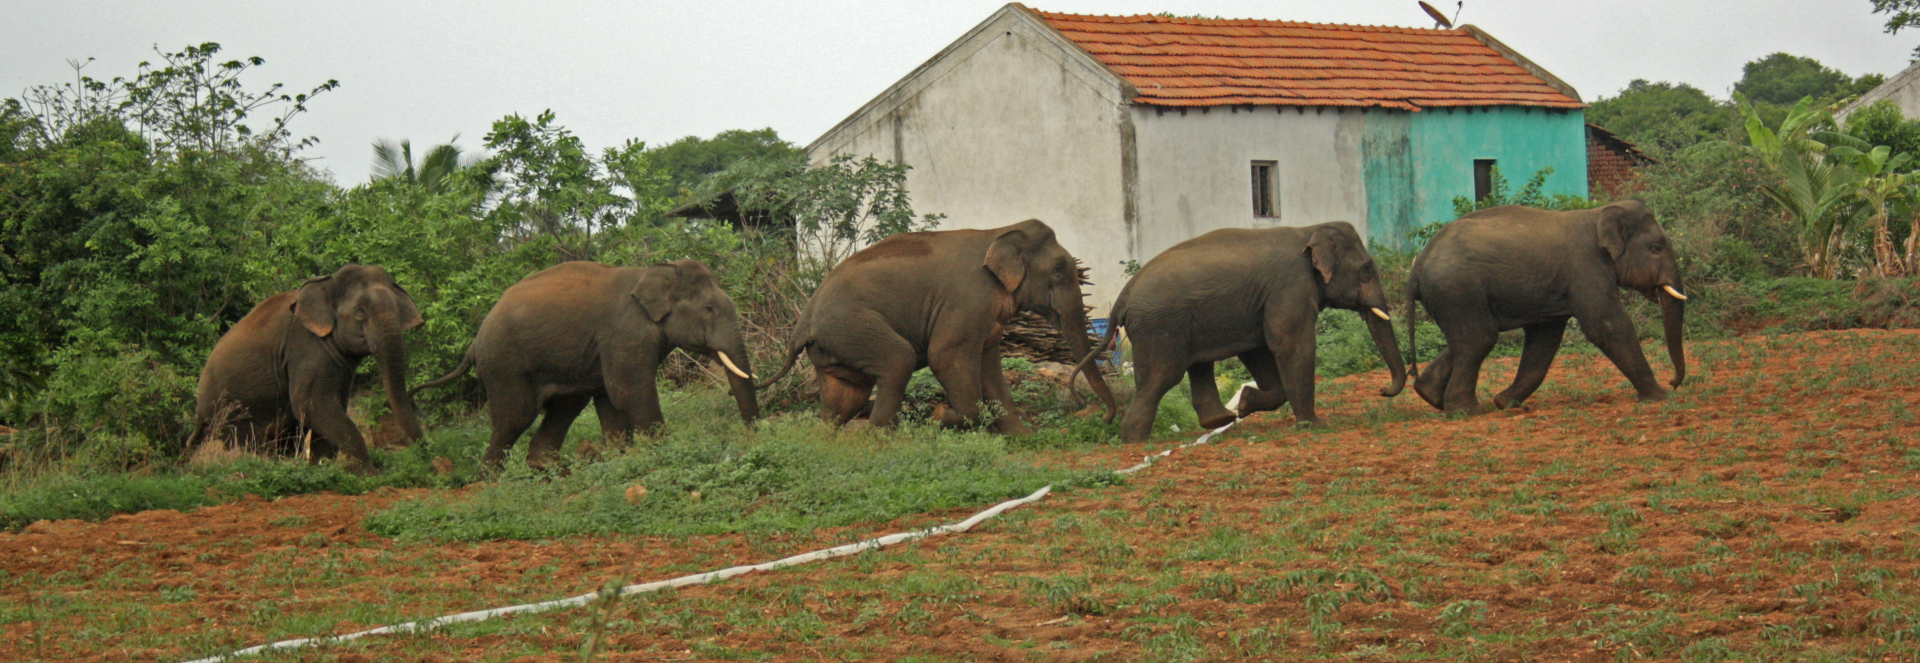 The research team set up camera traps that filmed herds of all-male elephants who stuck together. This was mostly seen in habitats encroached on by agricultural production or human intervention. Here, an all-male group walks through a human settlement. Photo: FEP/Vinod Kumar Moses  Cover Photo: Like human beings, elephants have complex social lives. As females mature, they stay on with the herd they were born into. Young males, it is believed, are chased away, and often lead solitary lives. They will often fight over females during the breeding season. Photo: Arindam Bhattacharya